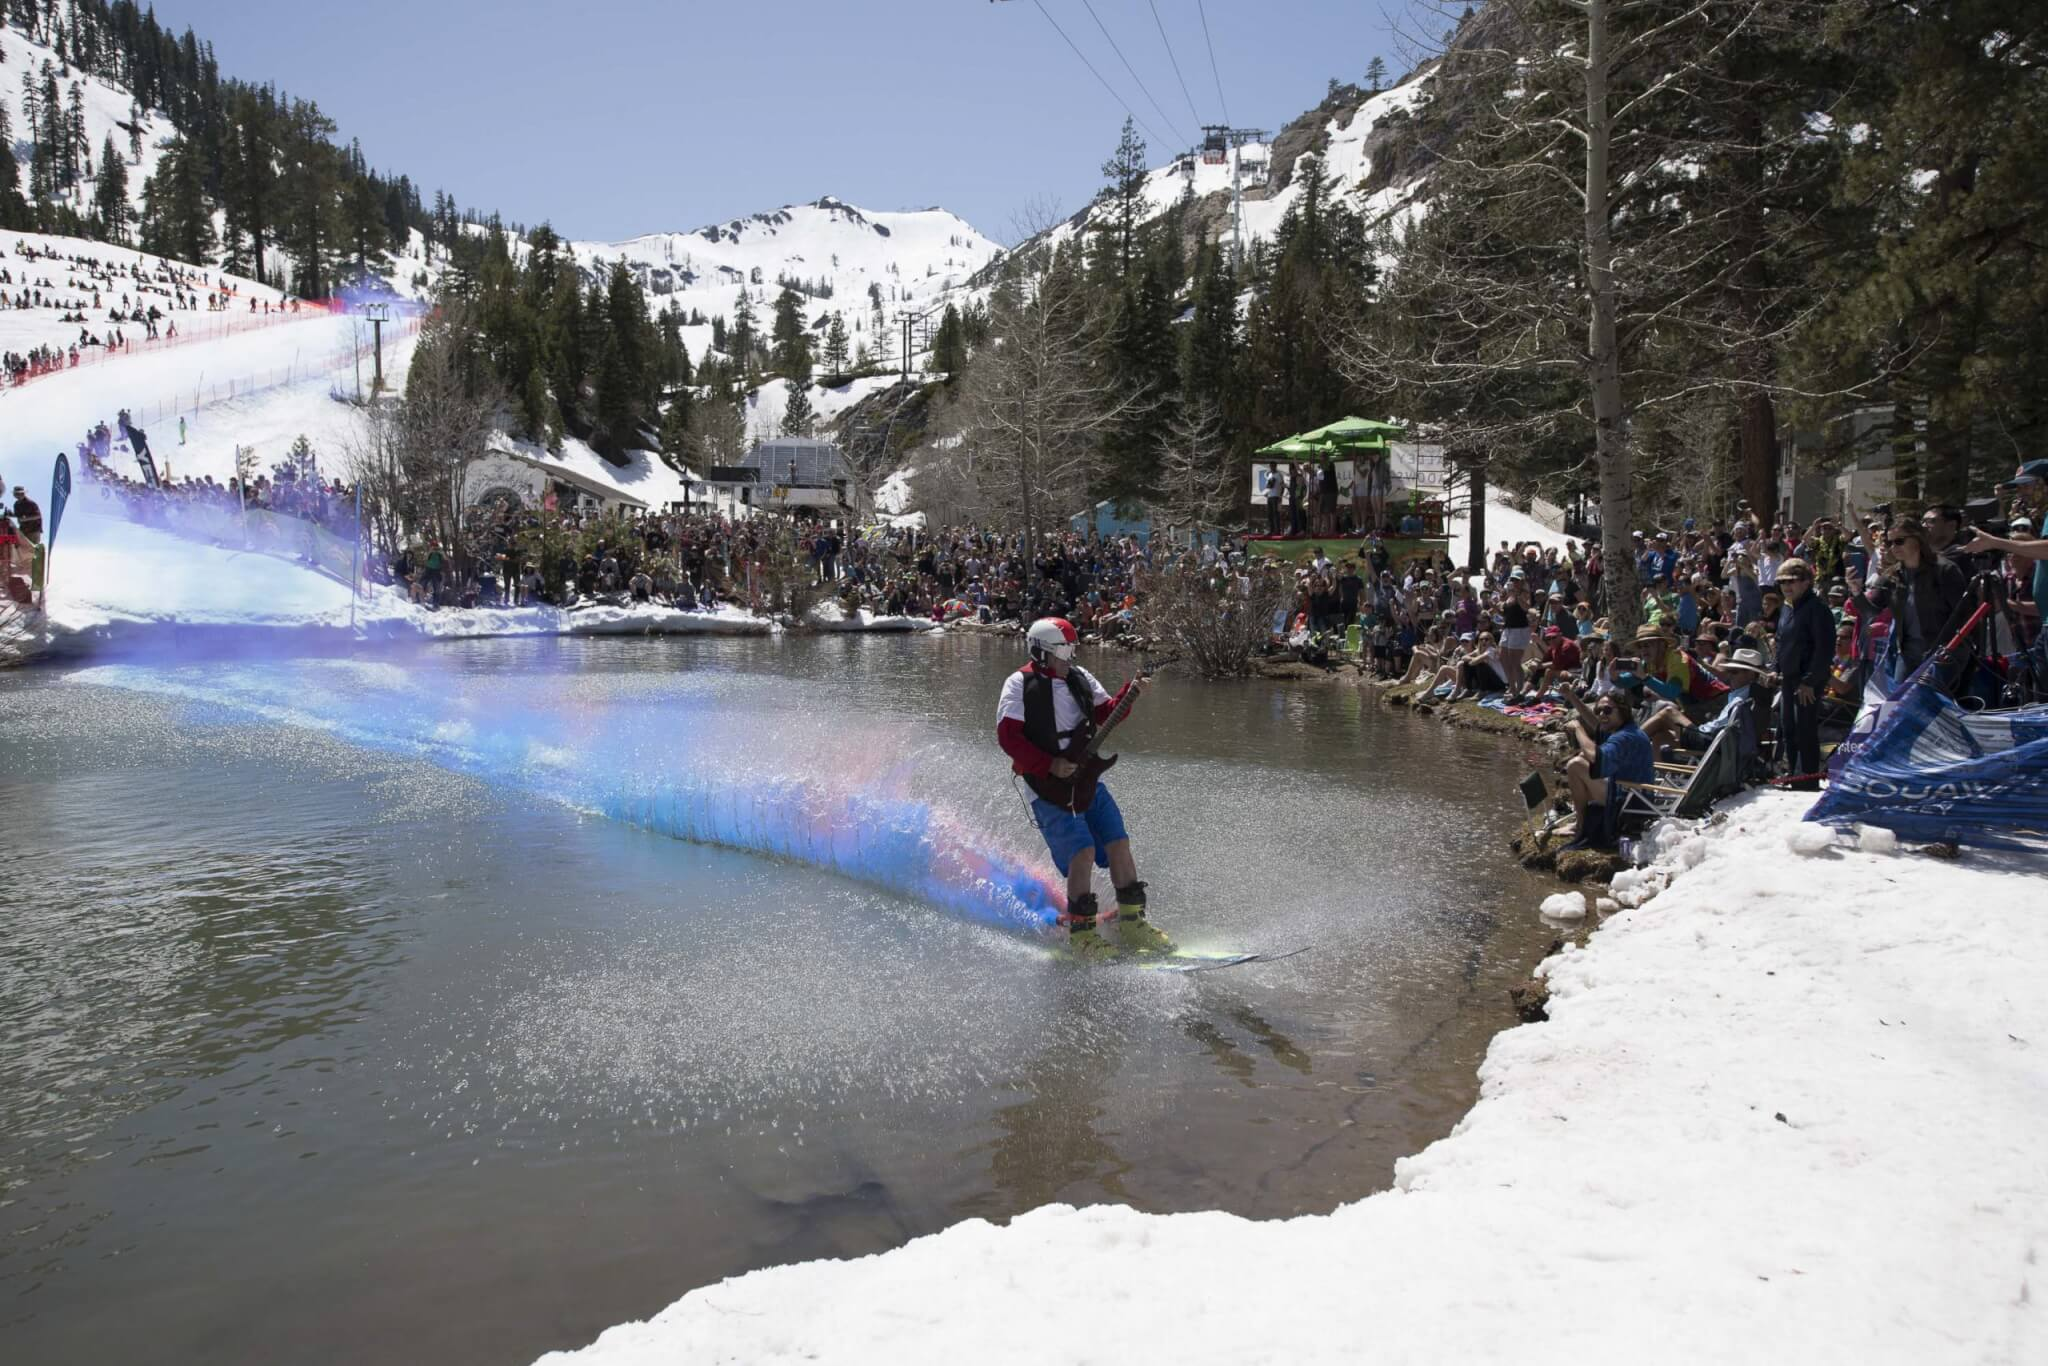 Cushing Crossing spring skiing at Squaw Valley California Lake Tahoe